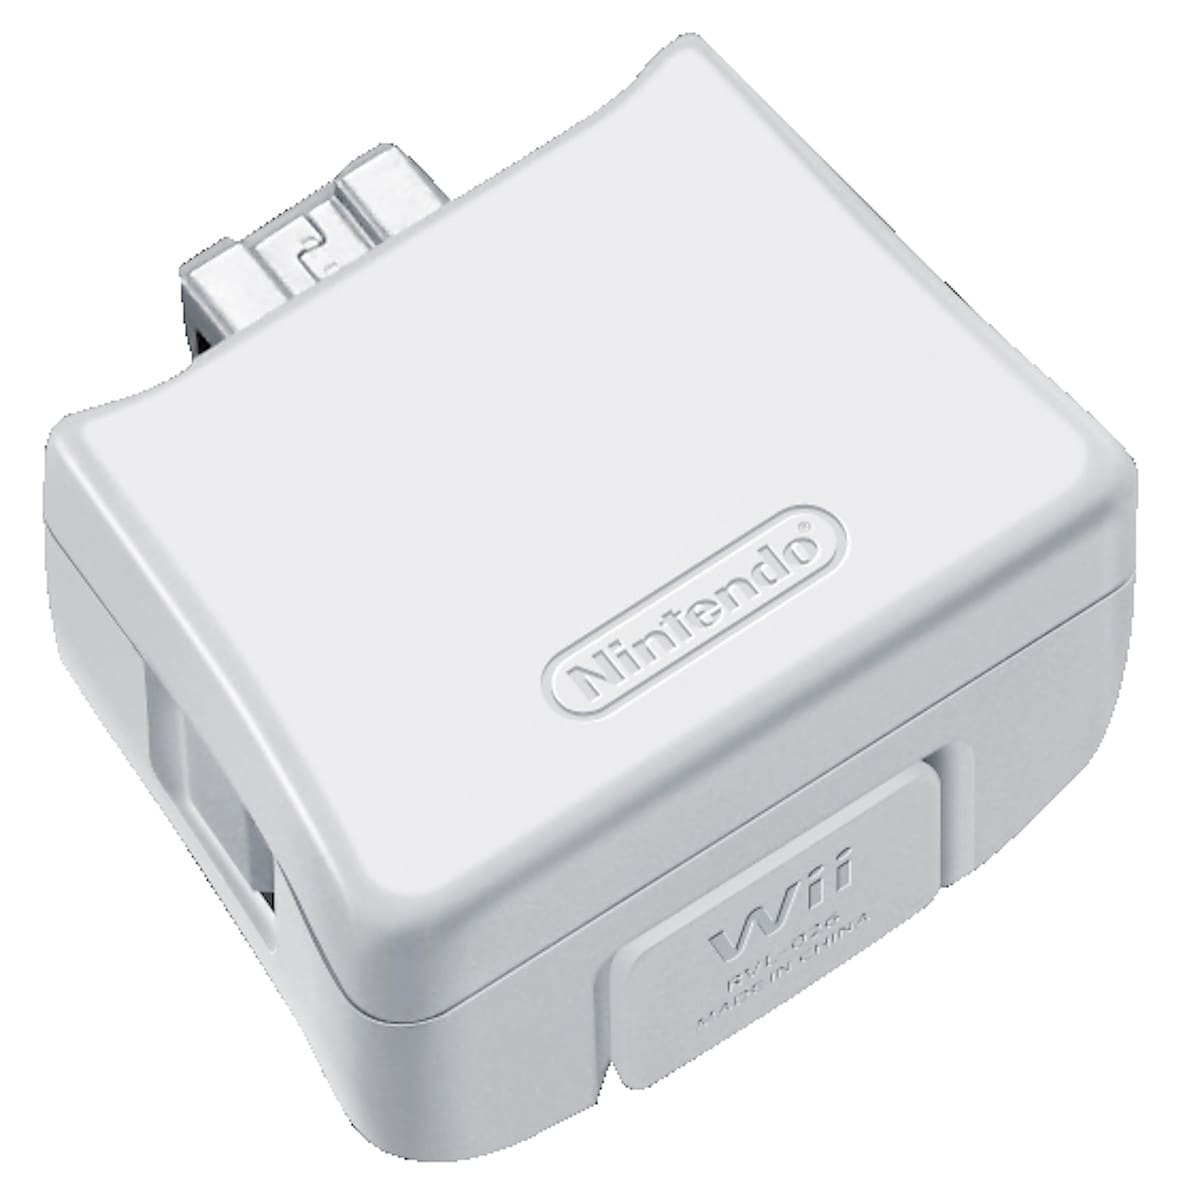 Wii Motion Plus,